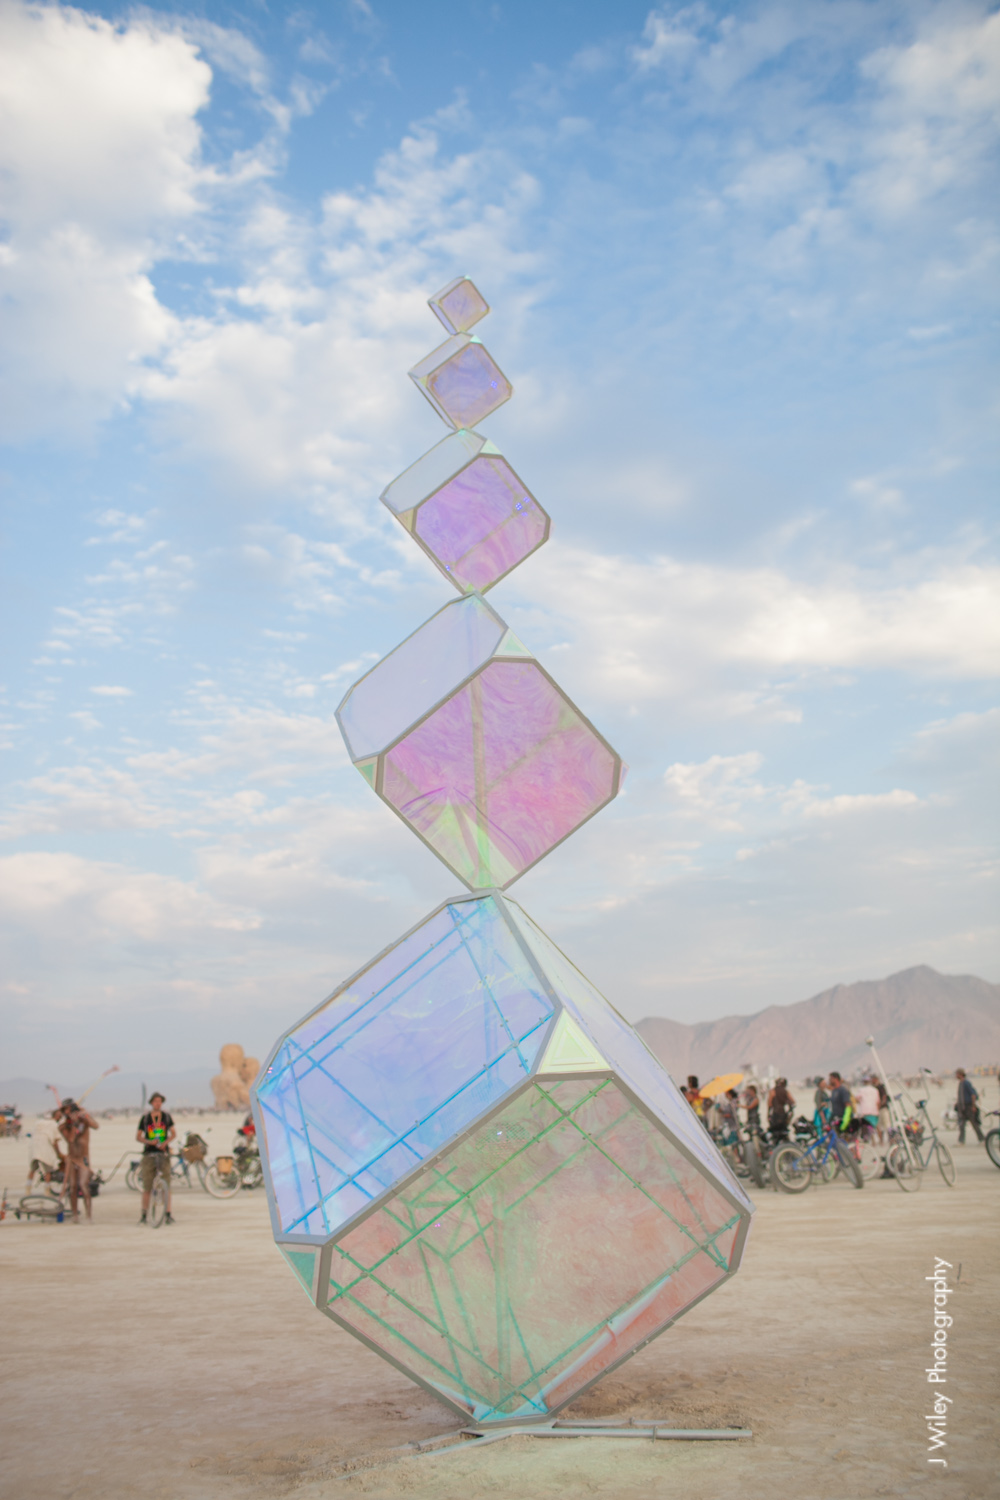 burning man 2014 caravansary art car playa temple-22